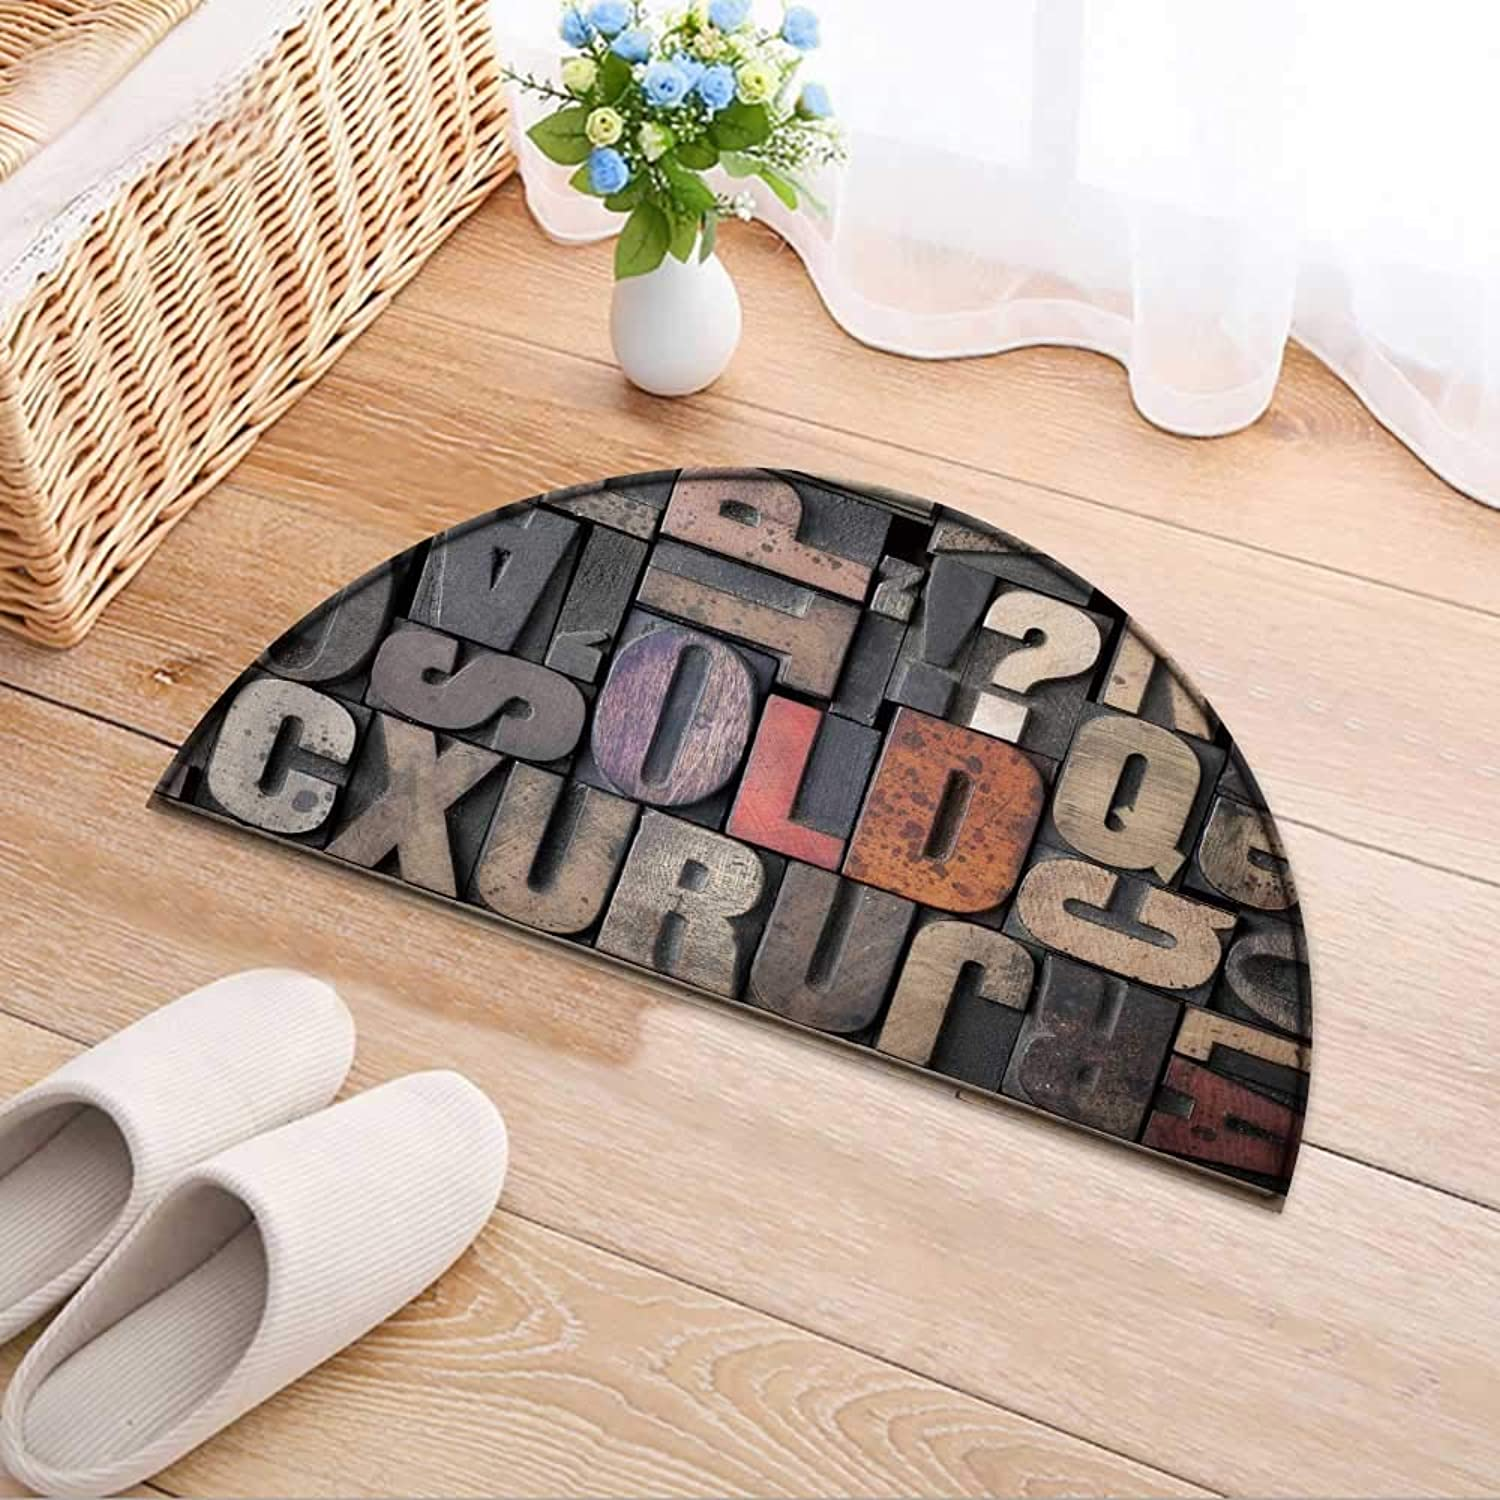 Semicircle Rug Kid Carpet The Word Spelled Out in Very Letterpress Blocks Home Decor Foor Carpe W47 x H32 INCH